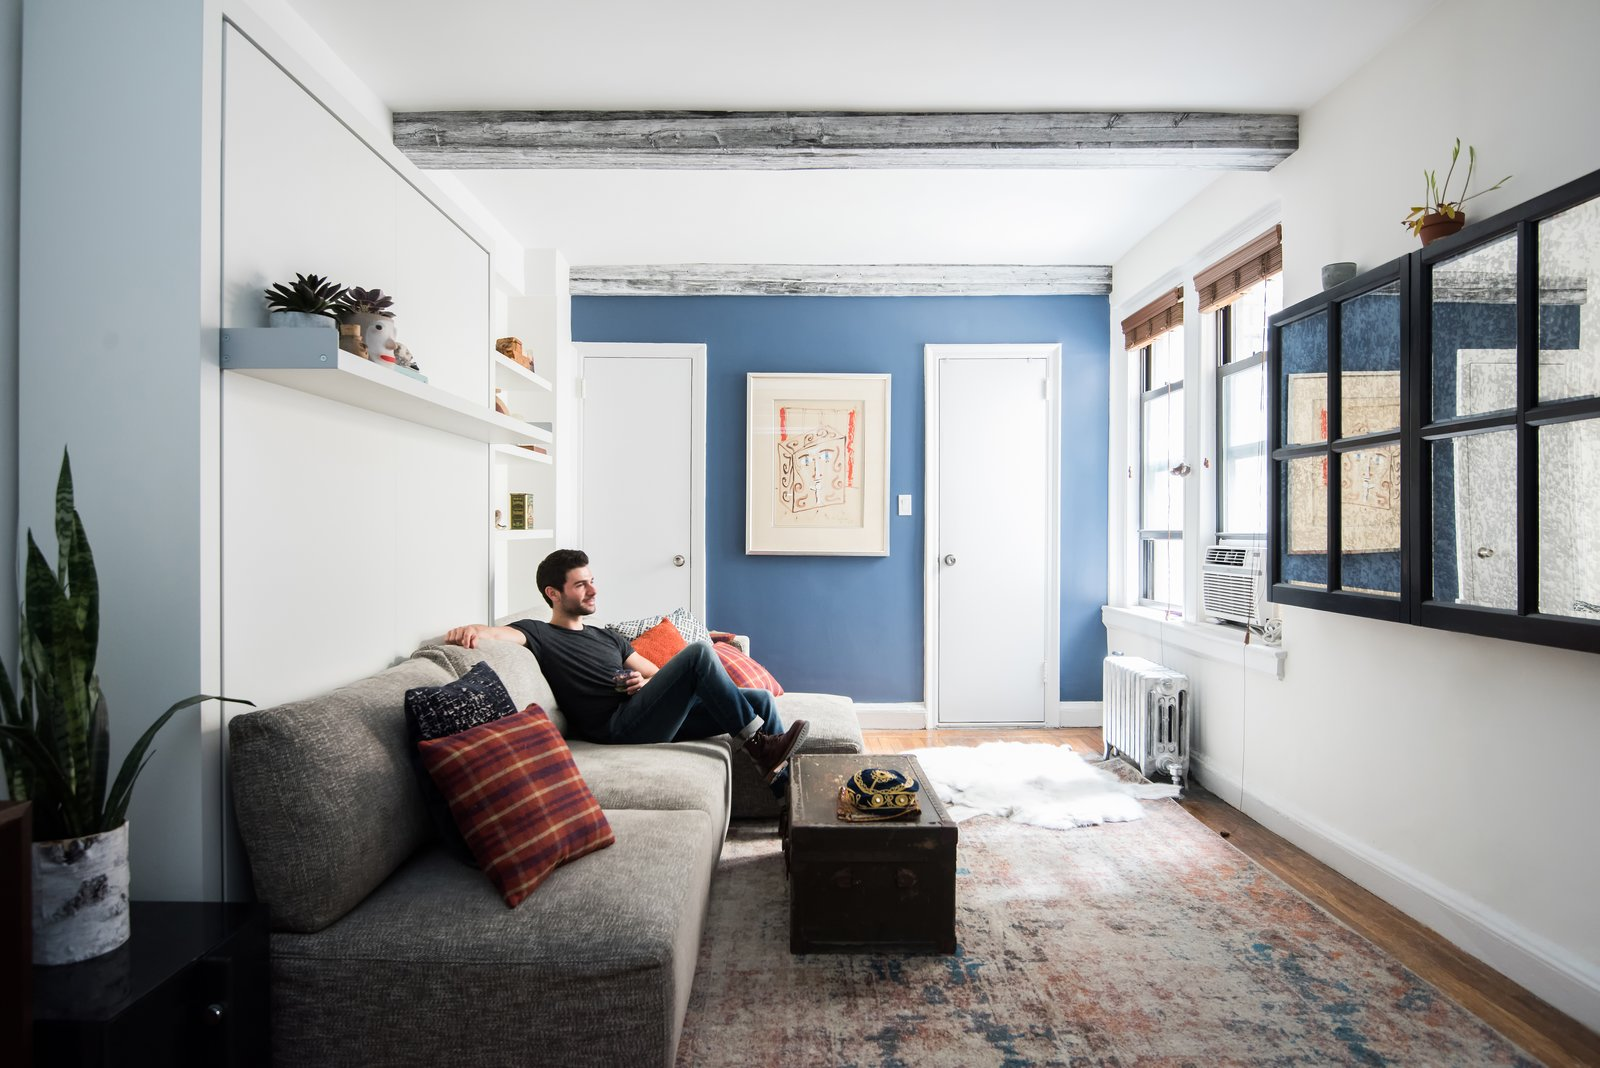 Photo 2 of 6 in Big on Broadway, Small on Space: Inside the Studio of Actor Adam Kantor